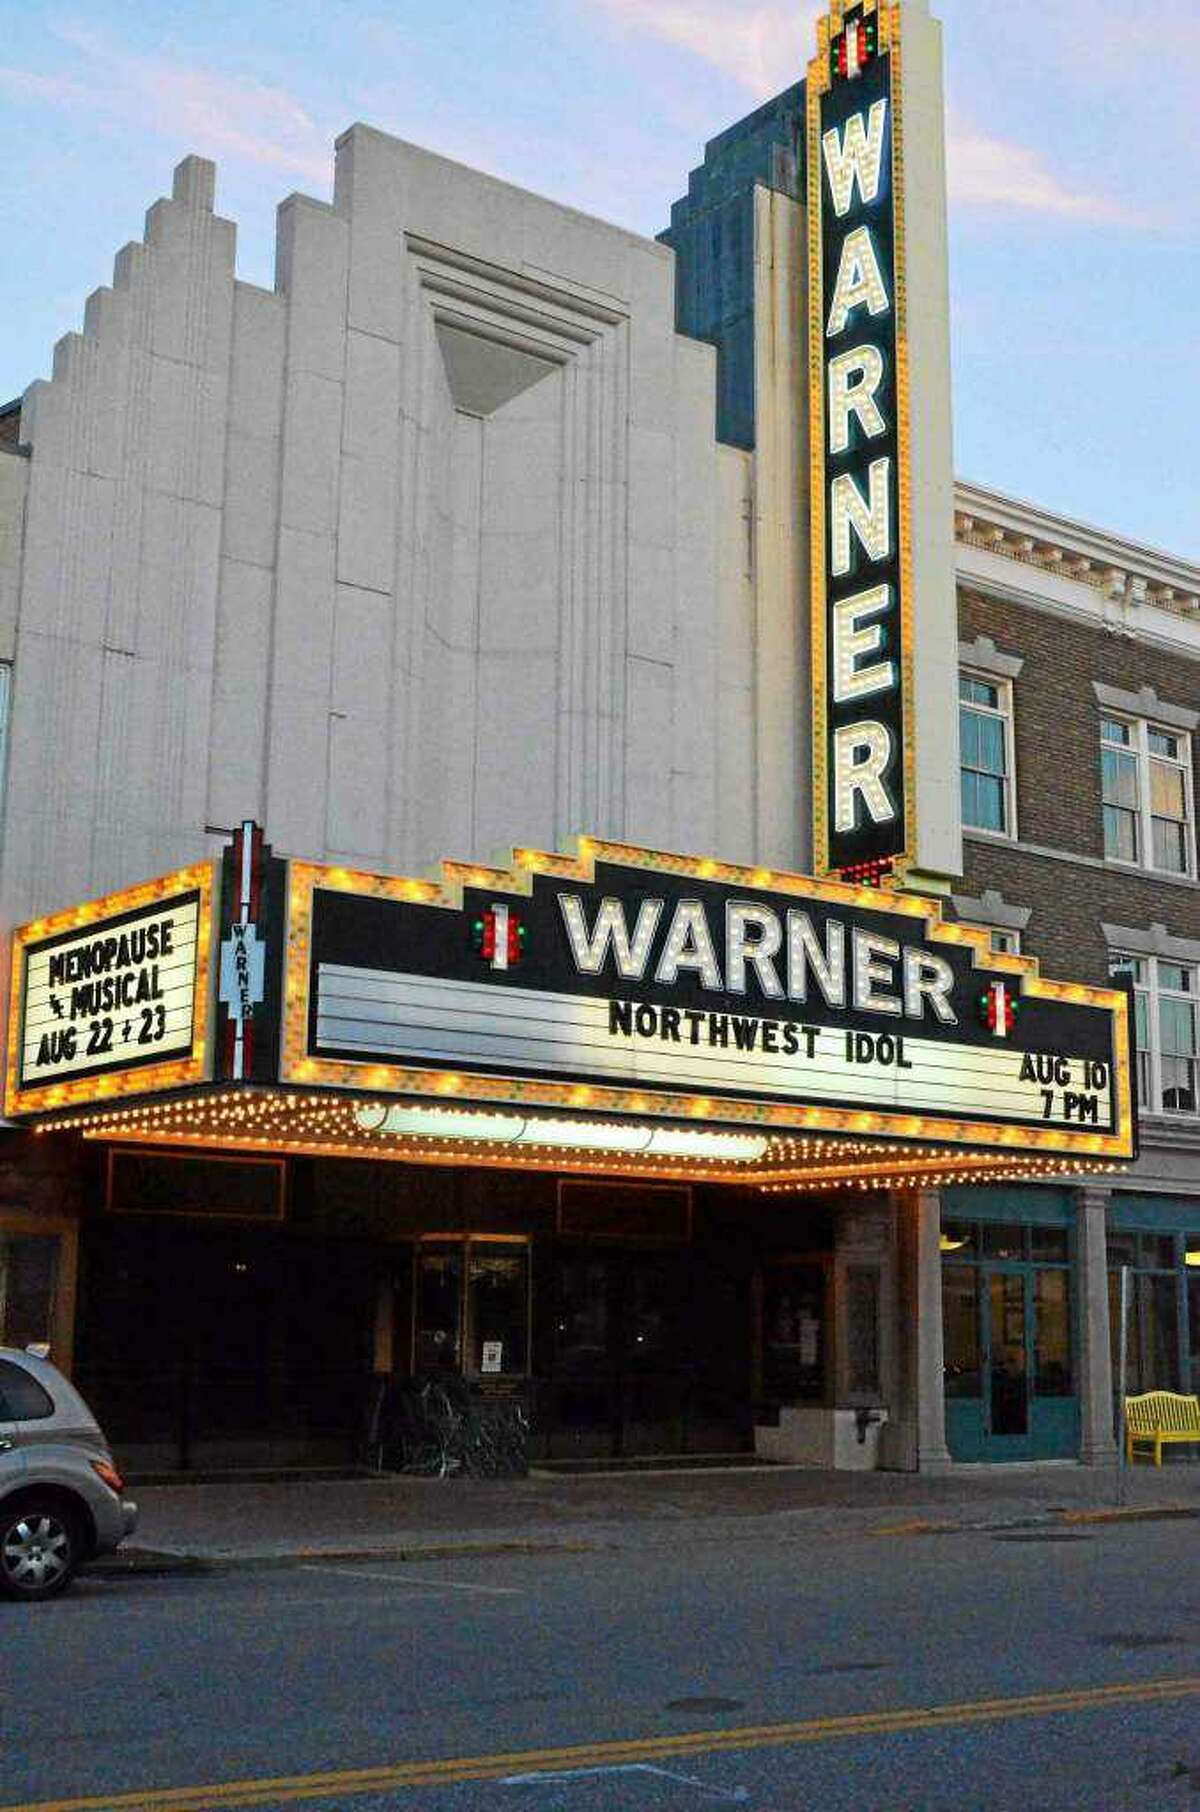 Ten contestants have been selected to advance to the Northwest Vocal Showcase Finals at the Warner Theatre Aug. 15, marking Torrington Parks and Recreation 15th anniversary hosting the contest.